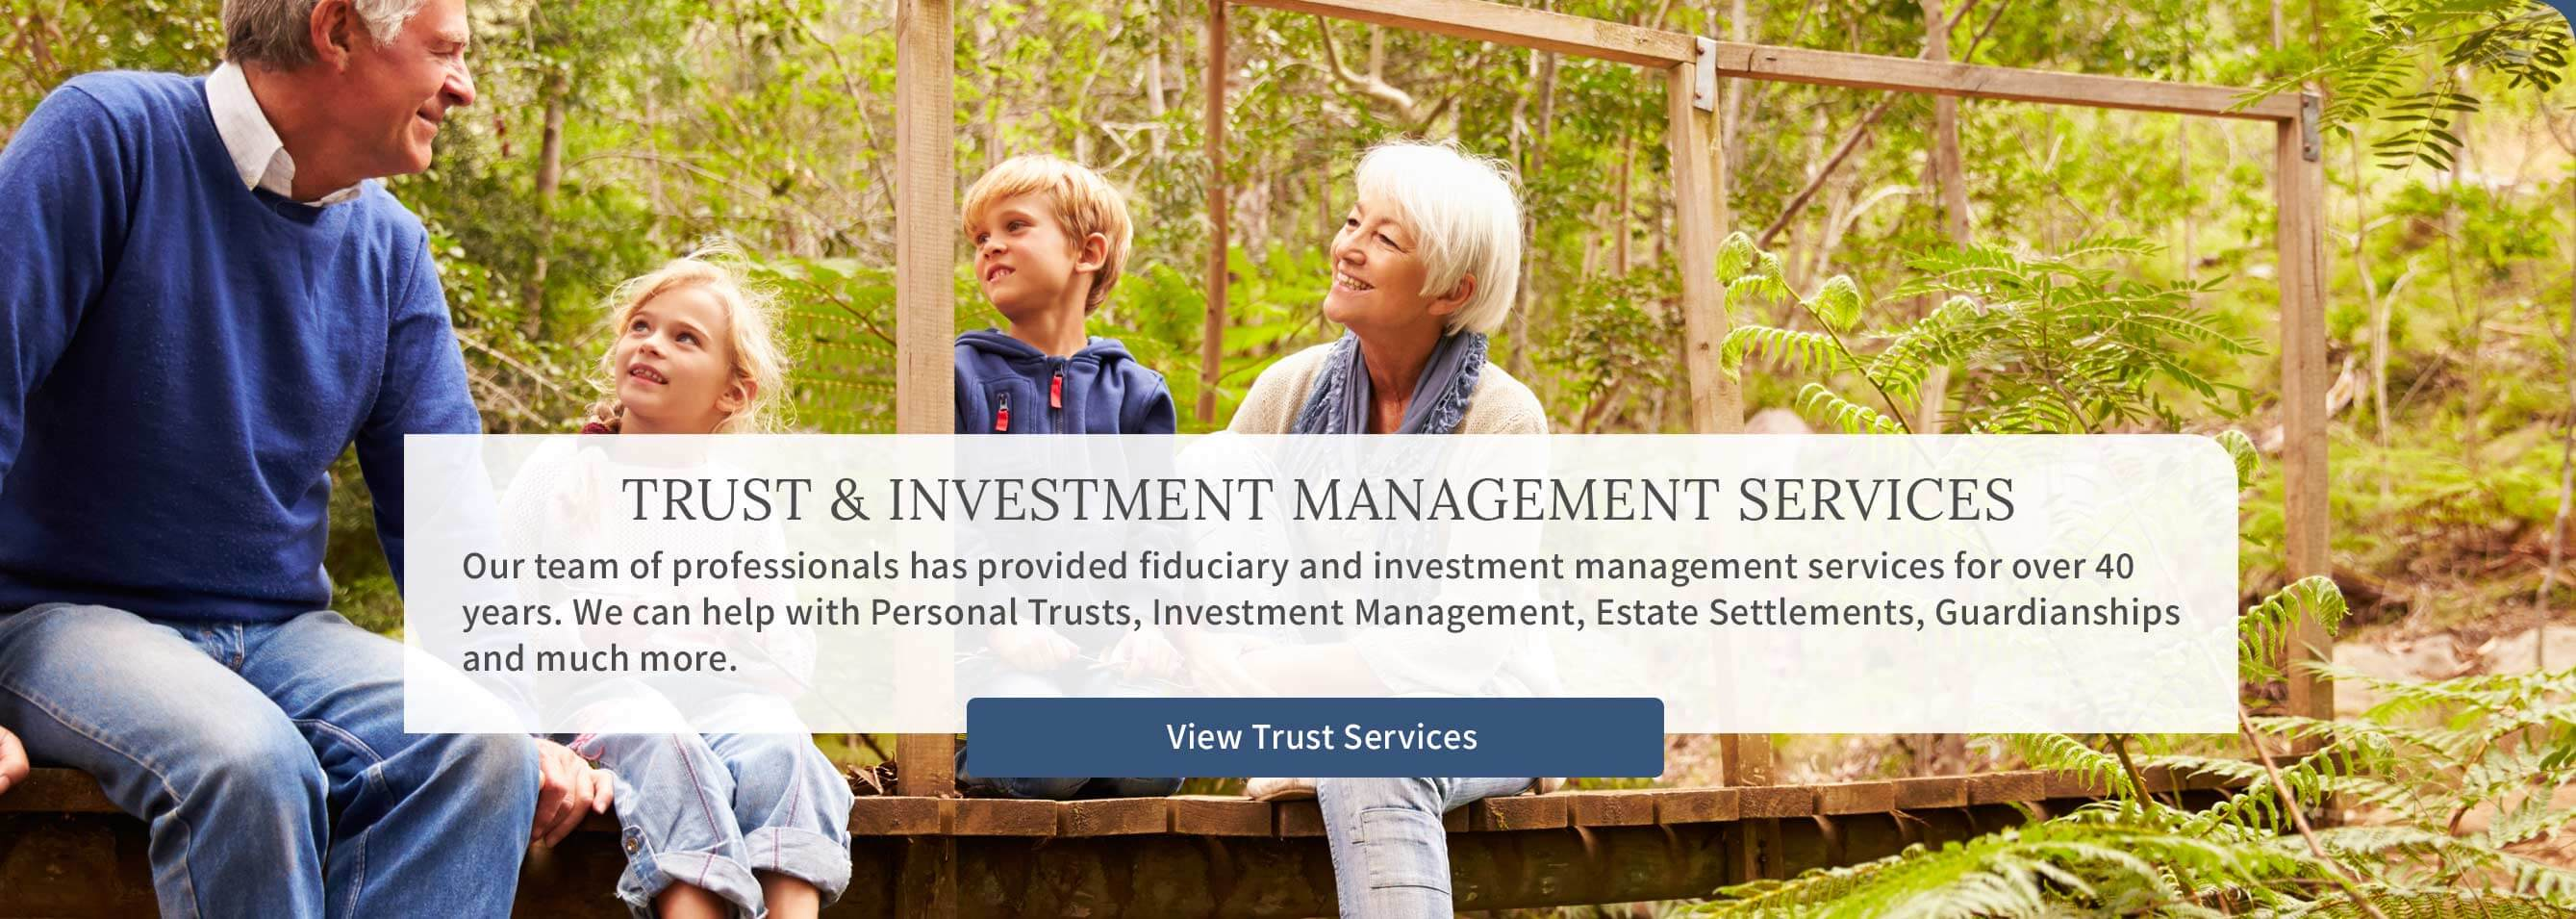 Trust & Investment Management - Our team of professionals has provided fiduciary and investment management services for over 40 years. - View Trust Services